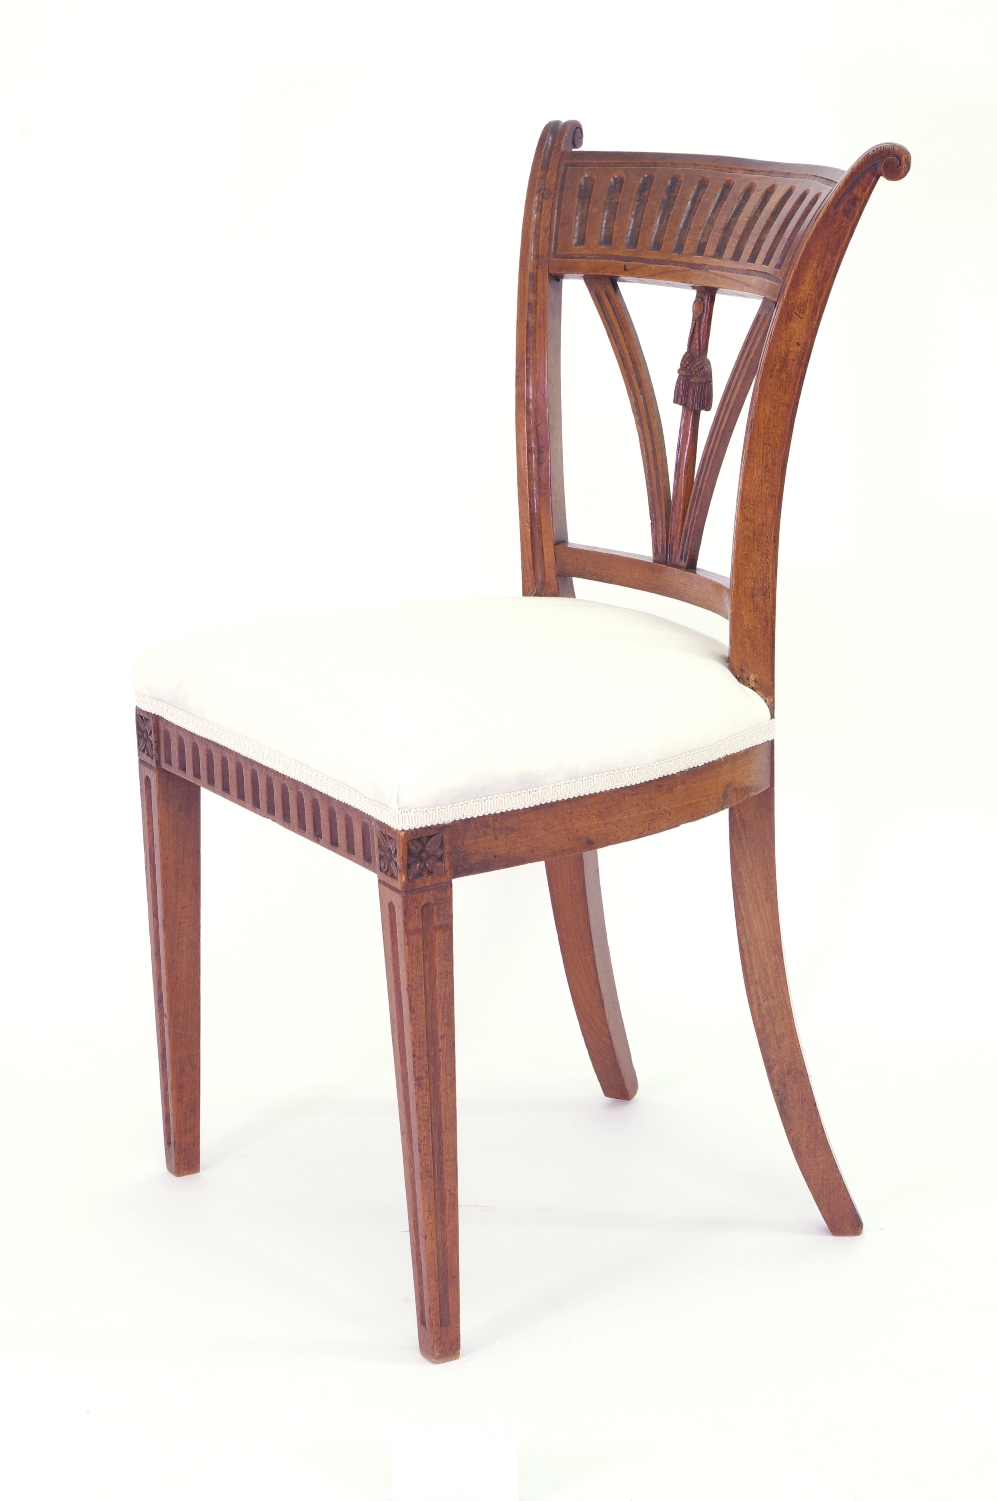 View 6: Set of Four Italian Side Chairs, c. 1800